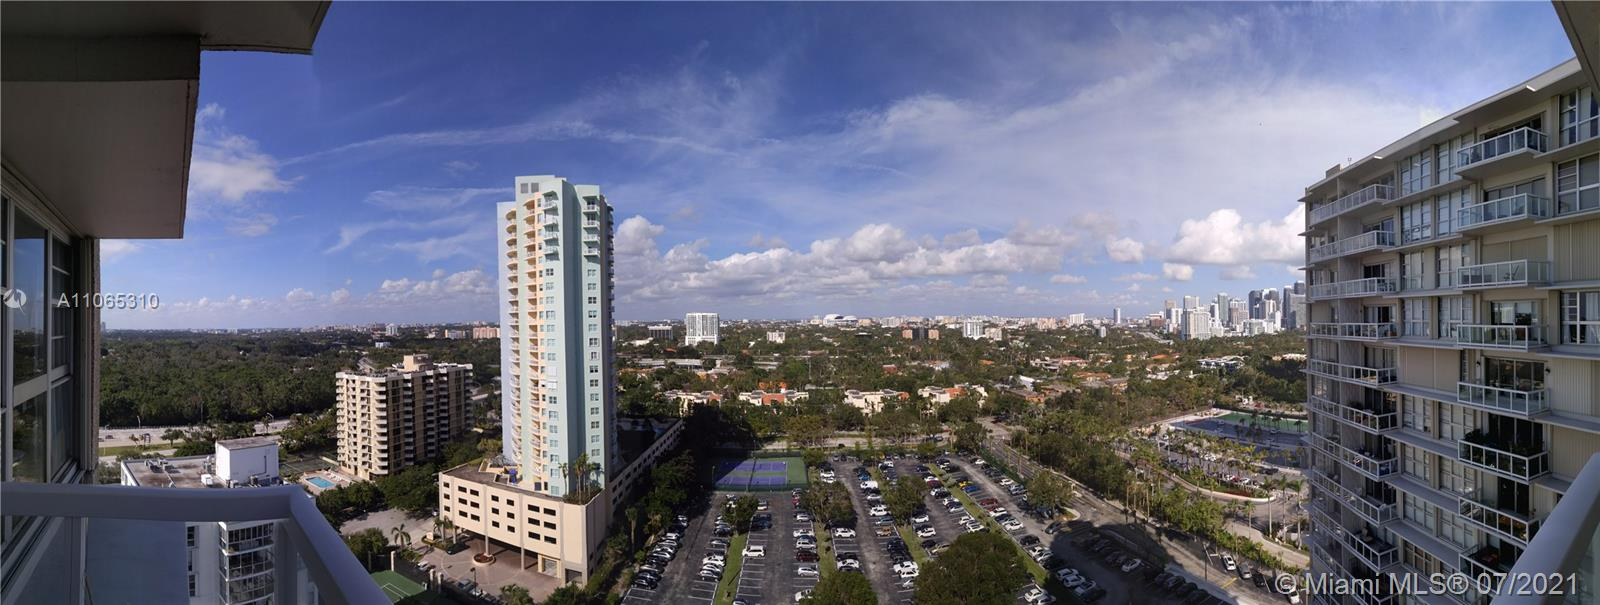 GREAT OPPORTUNITY IN RECENTLY UPDATED BUILDING, LARGE 1 BEDROOM AND 1 BATHROOM UNIT IN THE BEST AREA OF BRICKELL AVENUE, WITH GREAT CITY AND GARDEN VIEWS FROM ALL ROOMS, FULL MARBLE FLOORS, BRAND NEW STAINLESS STEEL APPLIANCES, UPDATED BATHROOM, UNIT HAS JUST BEEN PAINTED, OPEN KITCHEN, LARGE BALCONY, ACCORDION SHUTTERS. RENTAL INCLUDES, HOT WATER, BASIC CABLE, WATER AND SEWER, REMODELED GYM AND VERY NICE POOL AREA WITH BBQ. CABANAS AND MUCH MORE, MANAGEMENT ON SITE, SECURITY 24/7, TENNIS, BBQ, POOL, HOT TUB, CONVENIENCE STORE, KIDS PLAYGROUND, ASSIGNED PARKING SPACE AND VALET, EXCELLENT LOCATION WITH EASY ACCESS TO HIGHWAYS, LAUNDRY FACILITIES IN THE BUILDING, EASY TO SHOW, 24 HOUR NOTICE, SEE BROKER REMARKS.